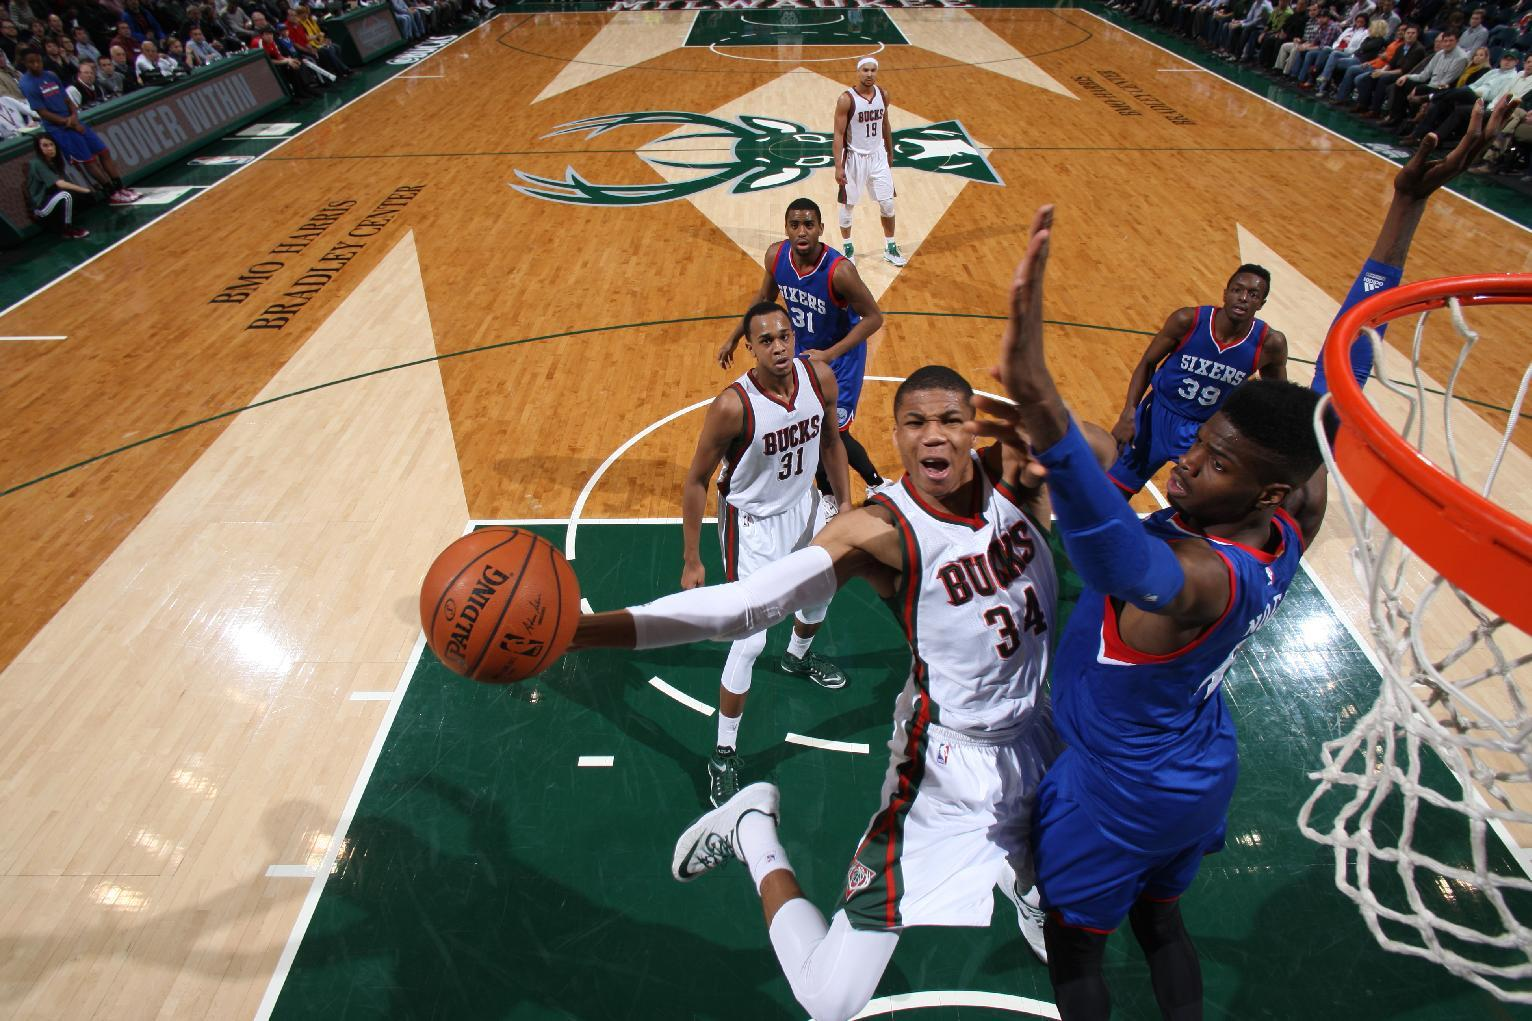 Carter-Williams impresses in debut, Bucks rout 76ers 104-88